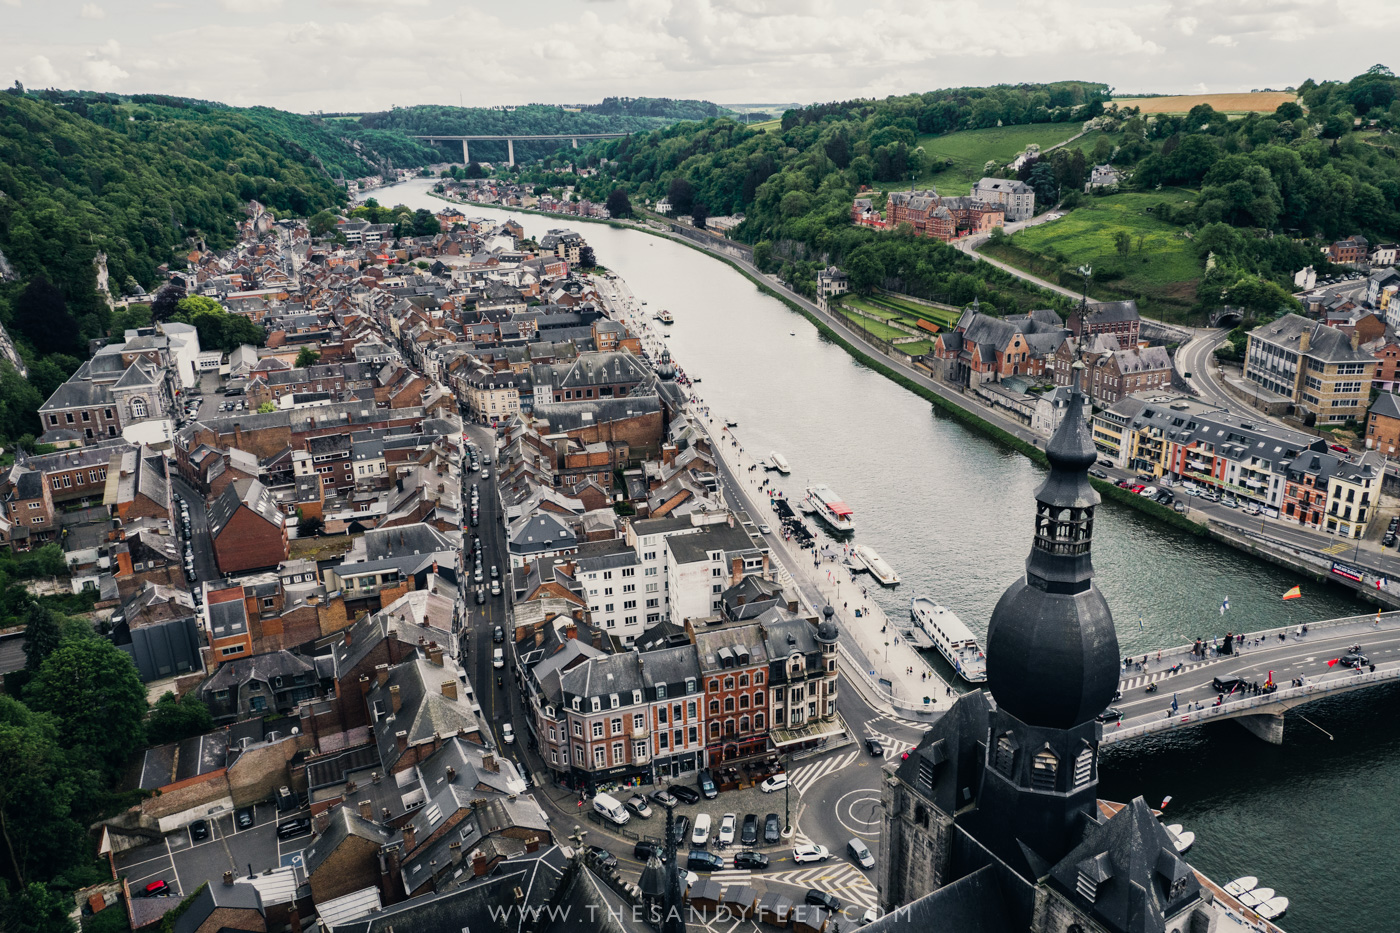 Take in the views from Dinant Citadel | A perfect weekend itinerary in the Namur region and one of the best things to do in Namur and Belgium's Wallonia Region.